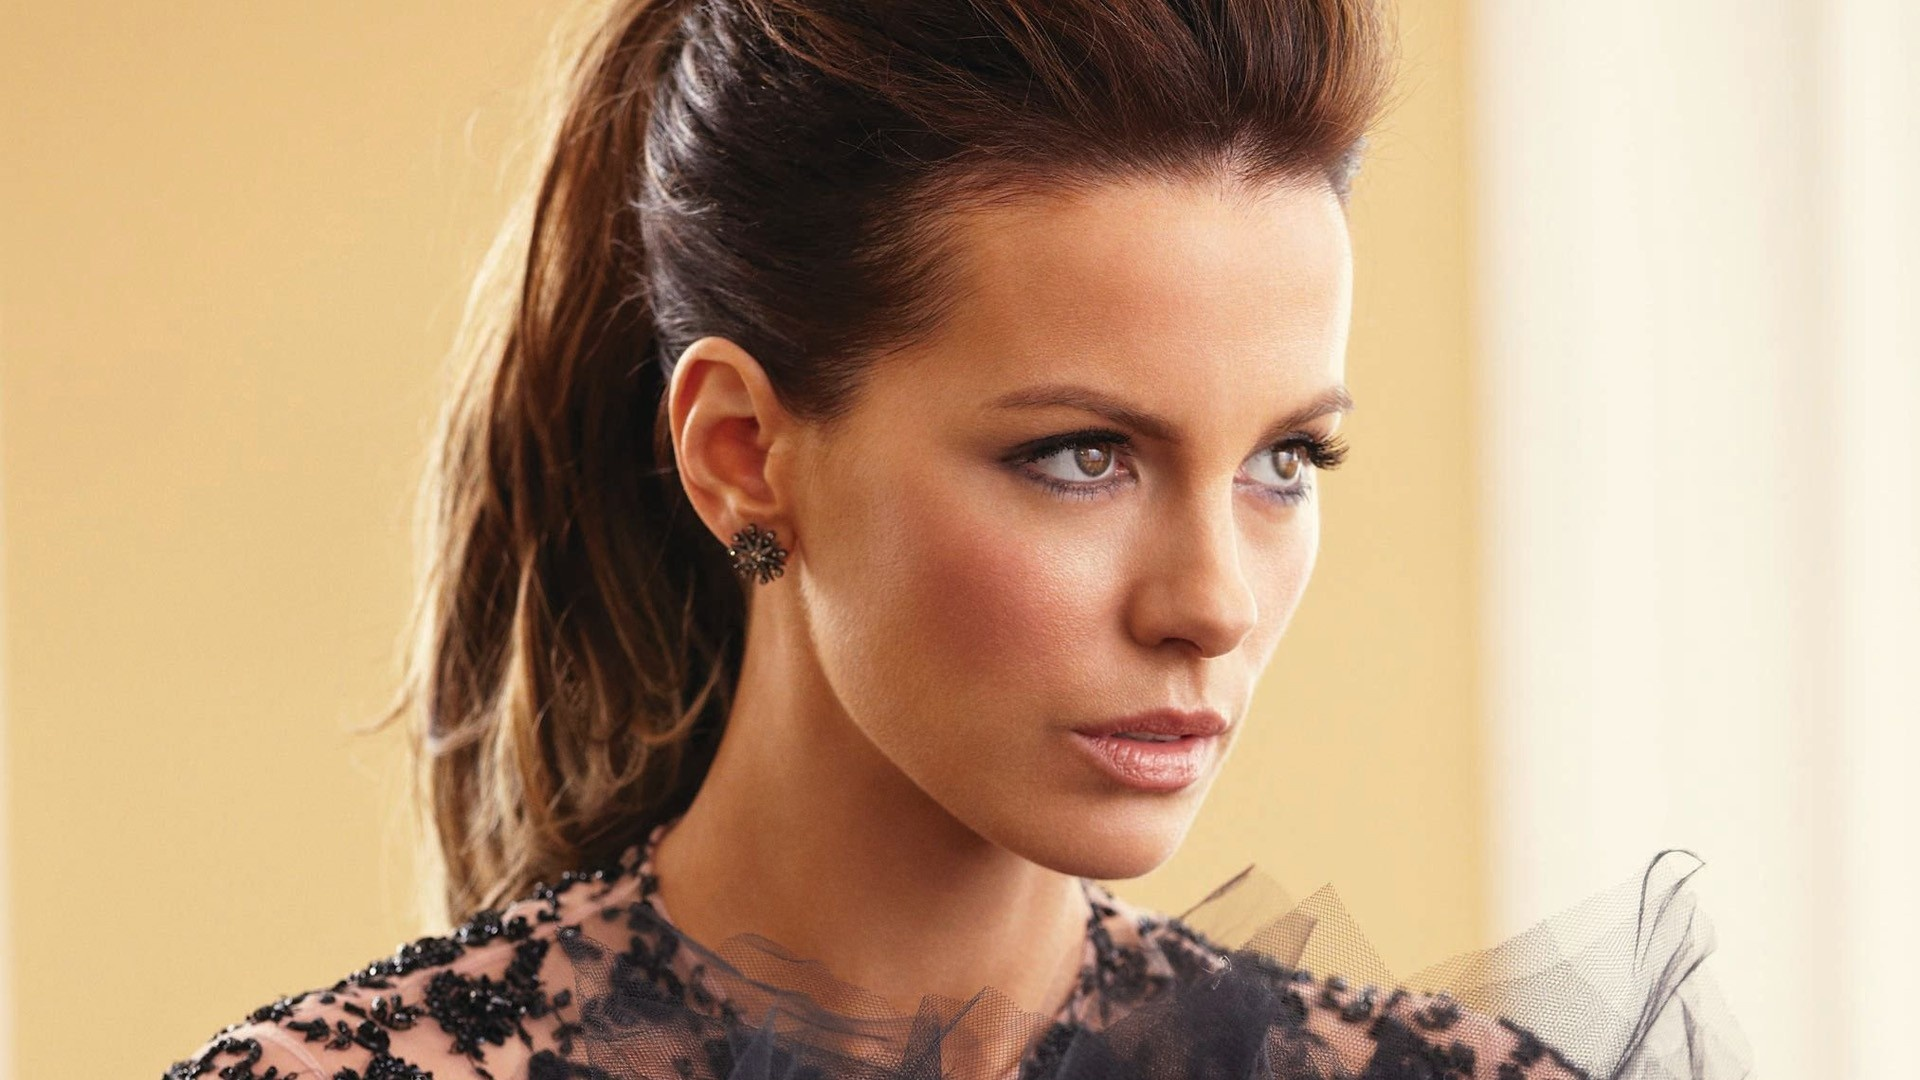 Fondos De Pantalla Kate Beckinsale 04 1920x1080 Full Hd 2k